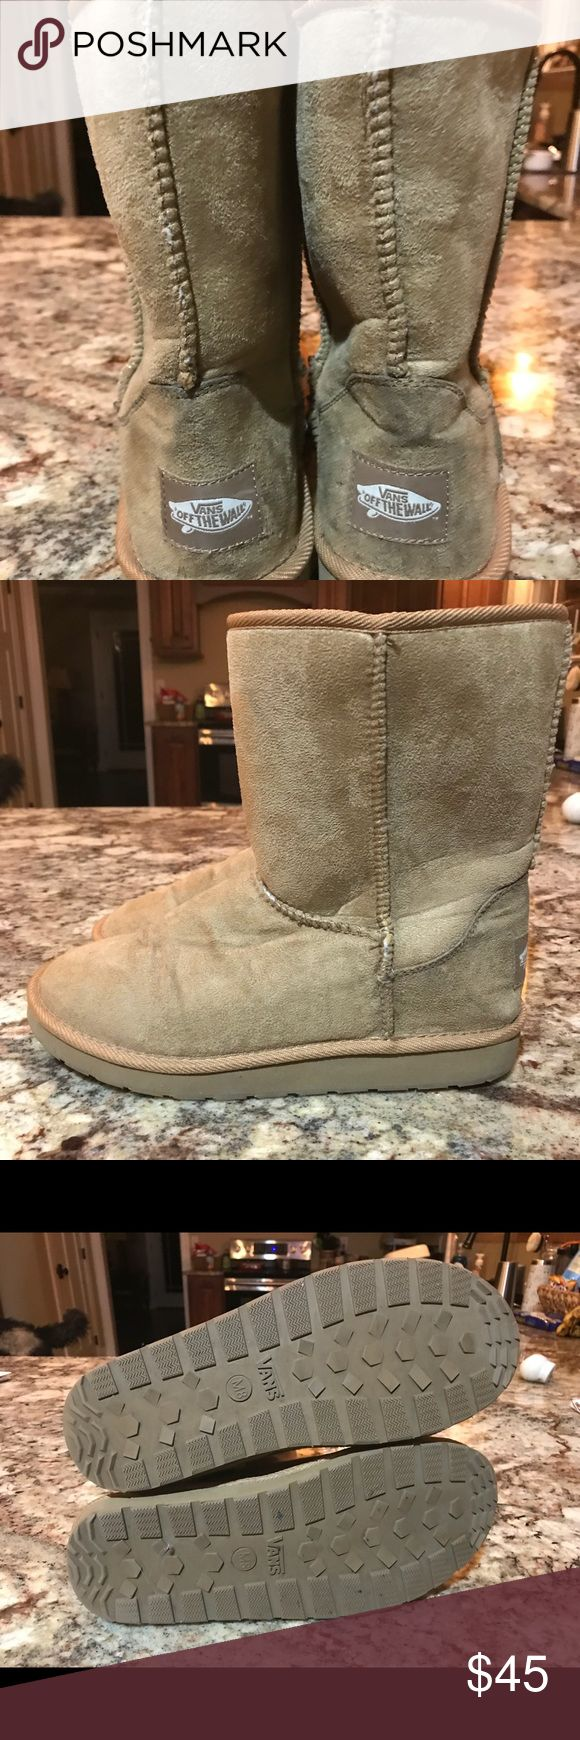 Vans Boots Men size 8 Bought these from another Posher but they were a men's 8, not a women's 8 as advertised. They are in great condition! Make an offer! Vans Shoes Boots